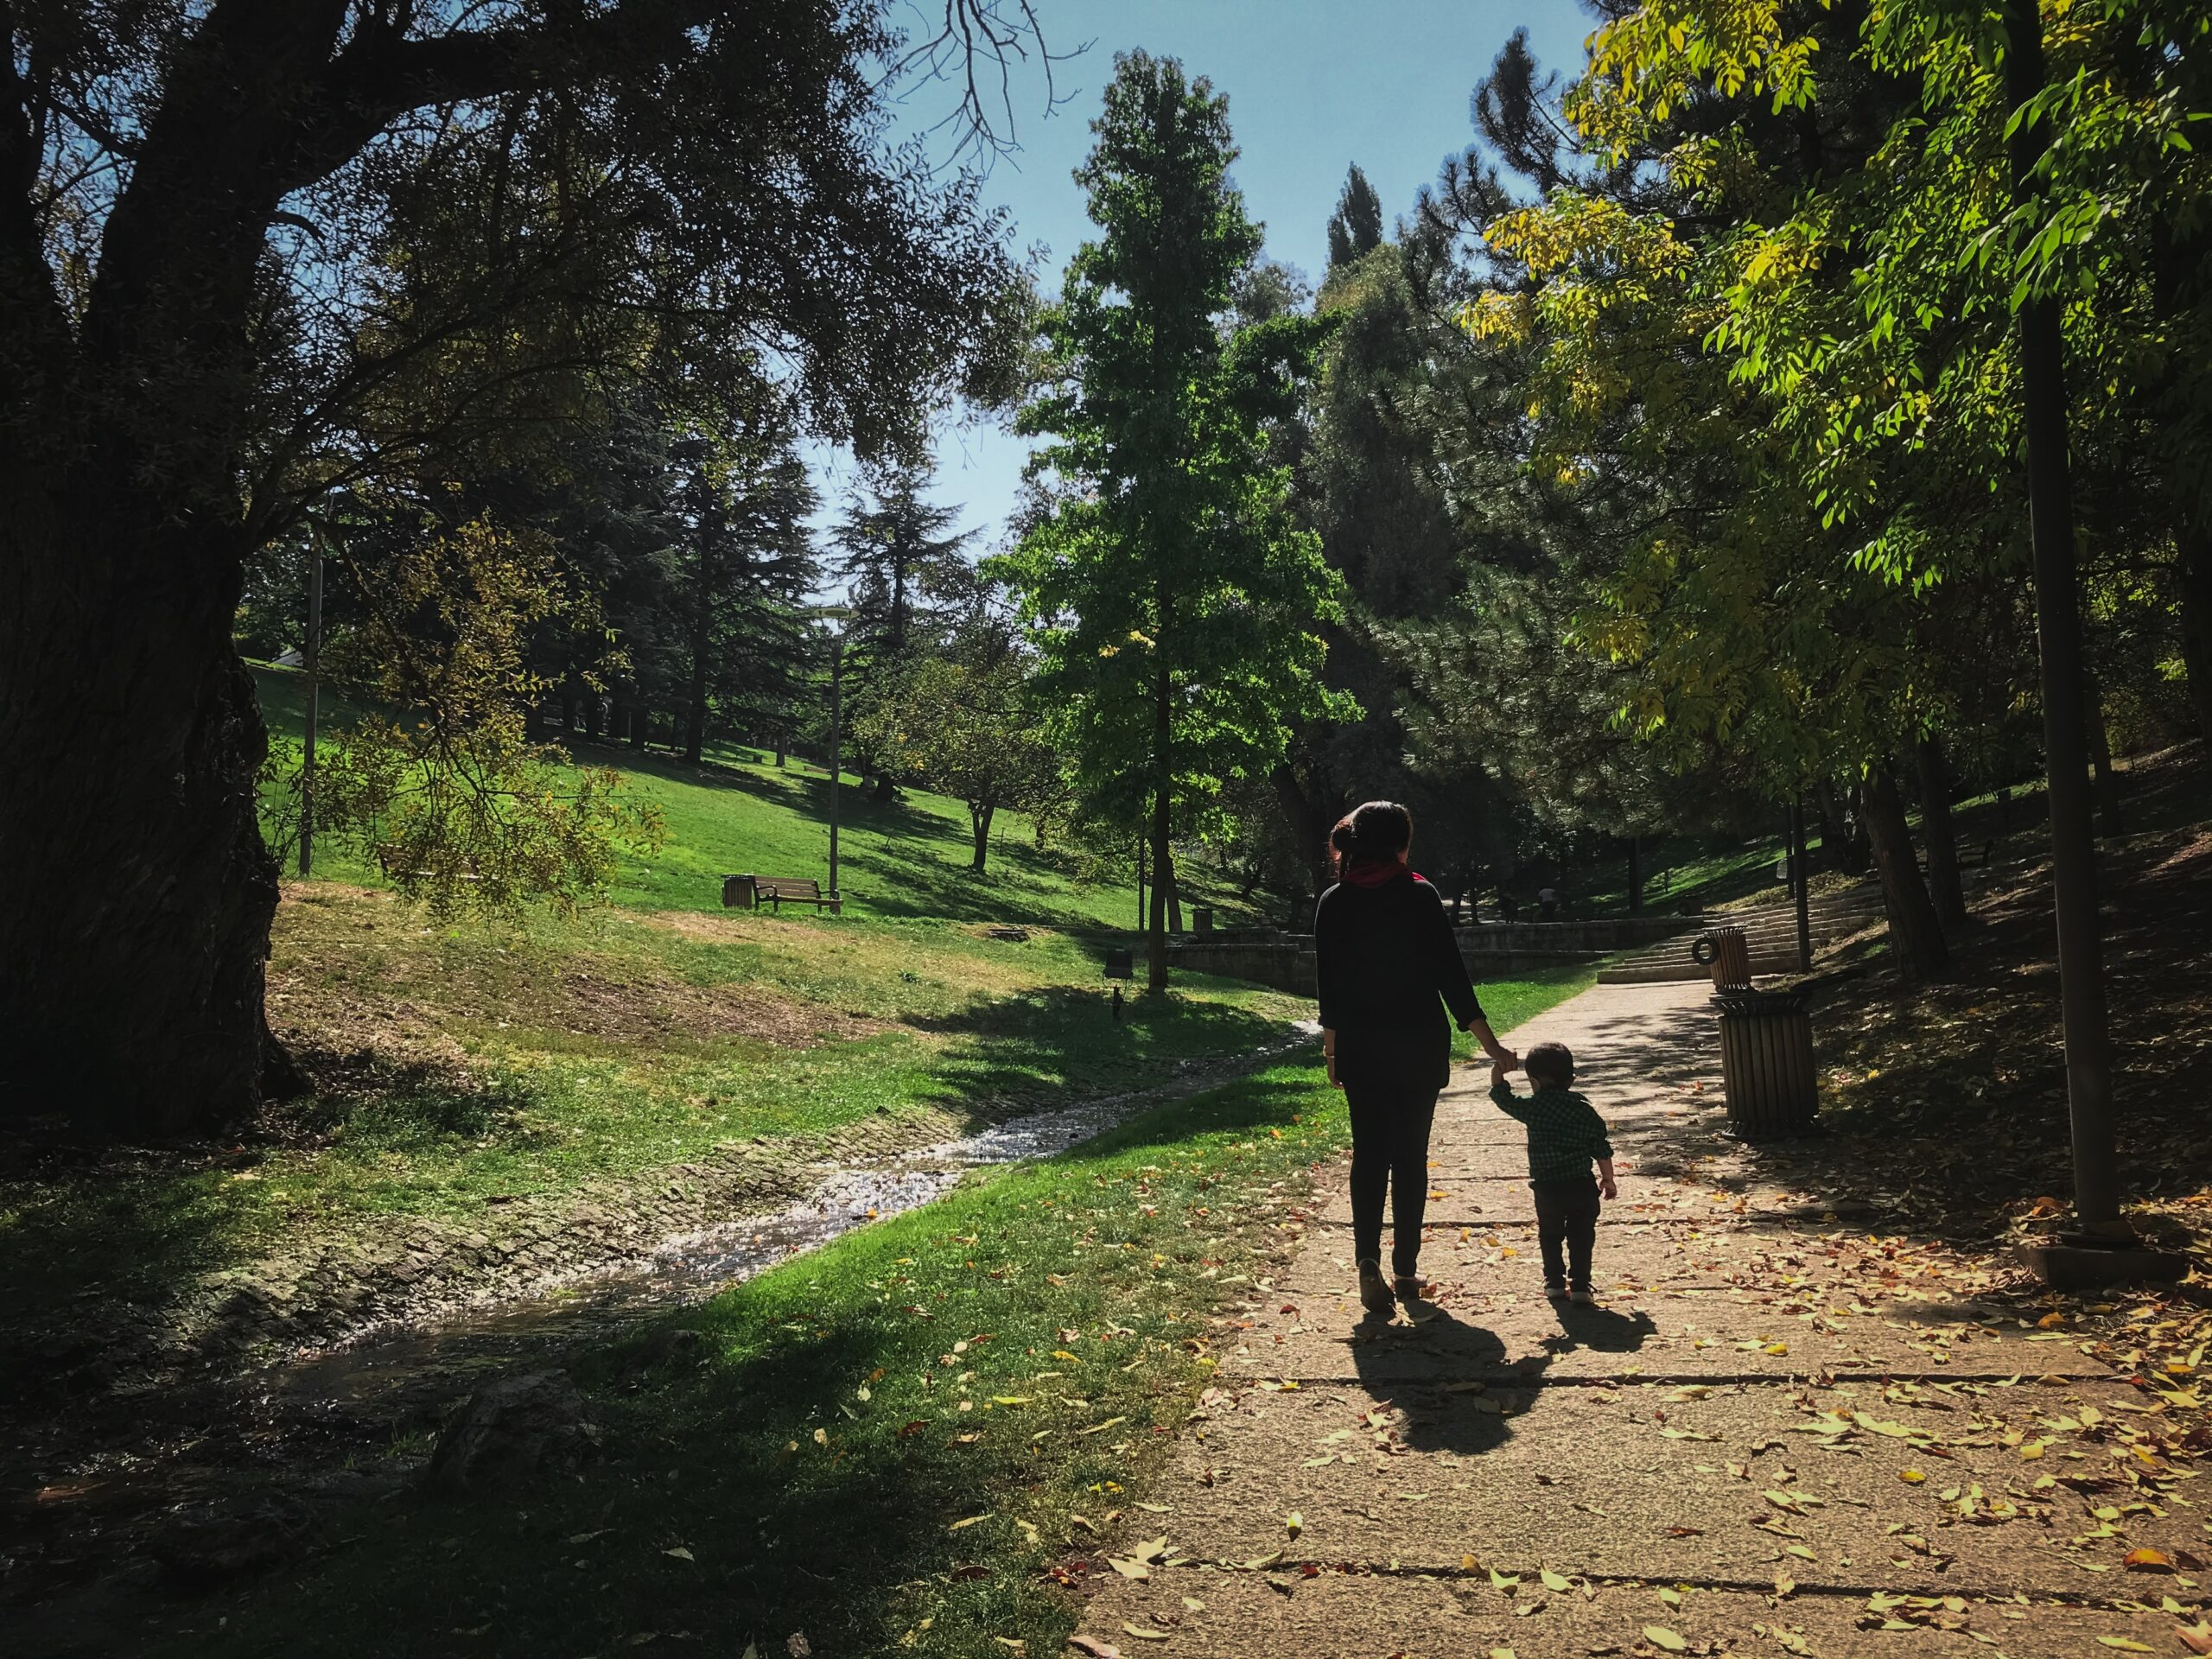 Parent and child walk on a greenway